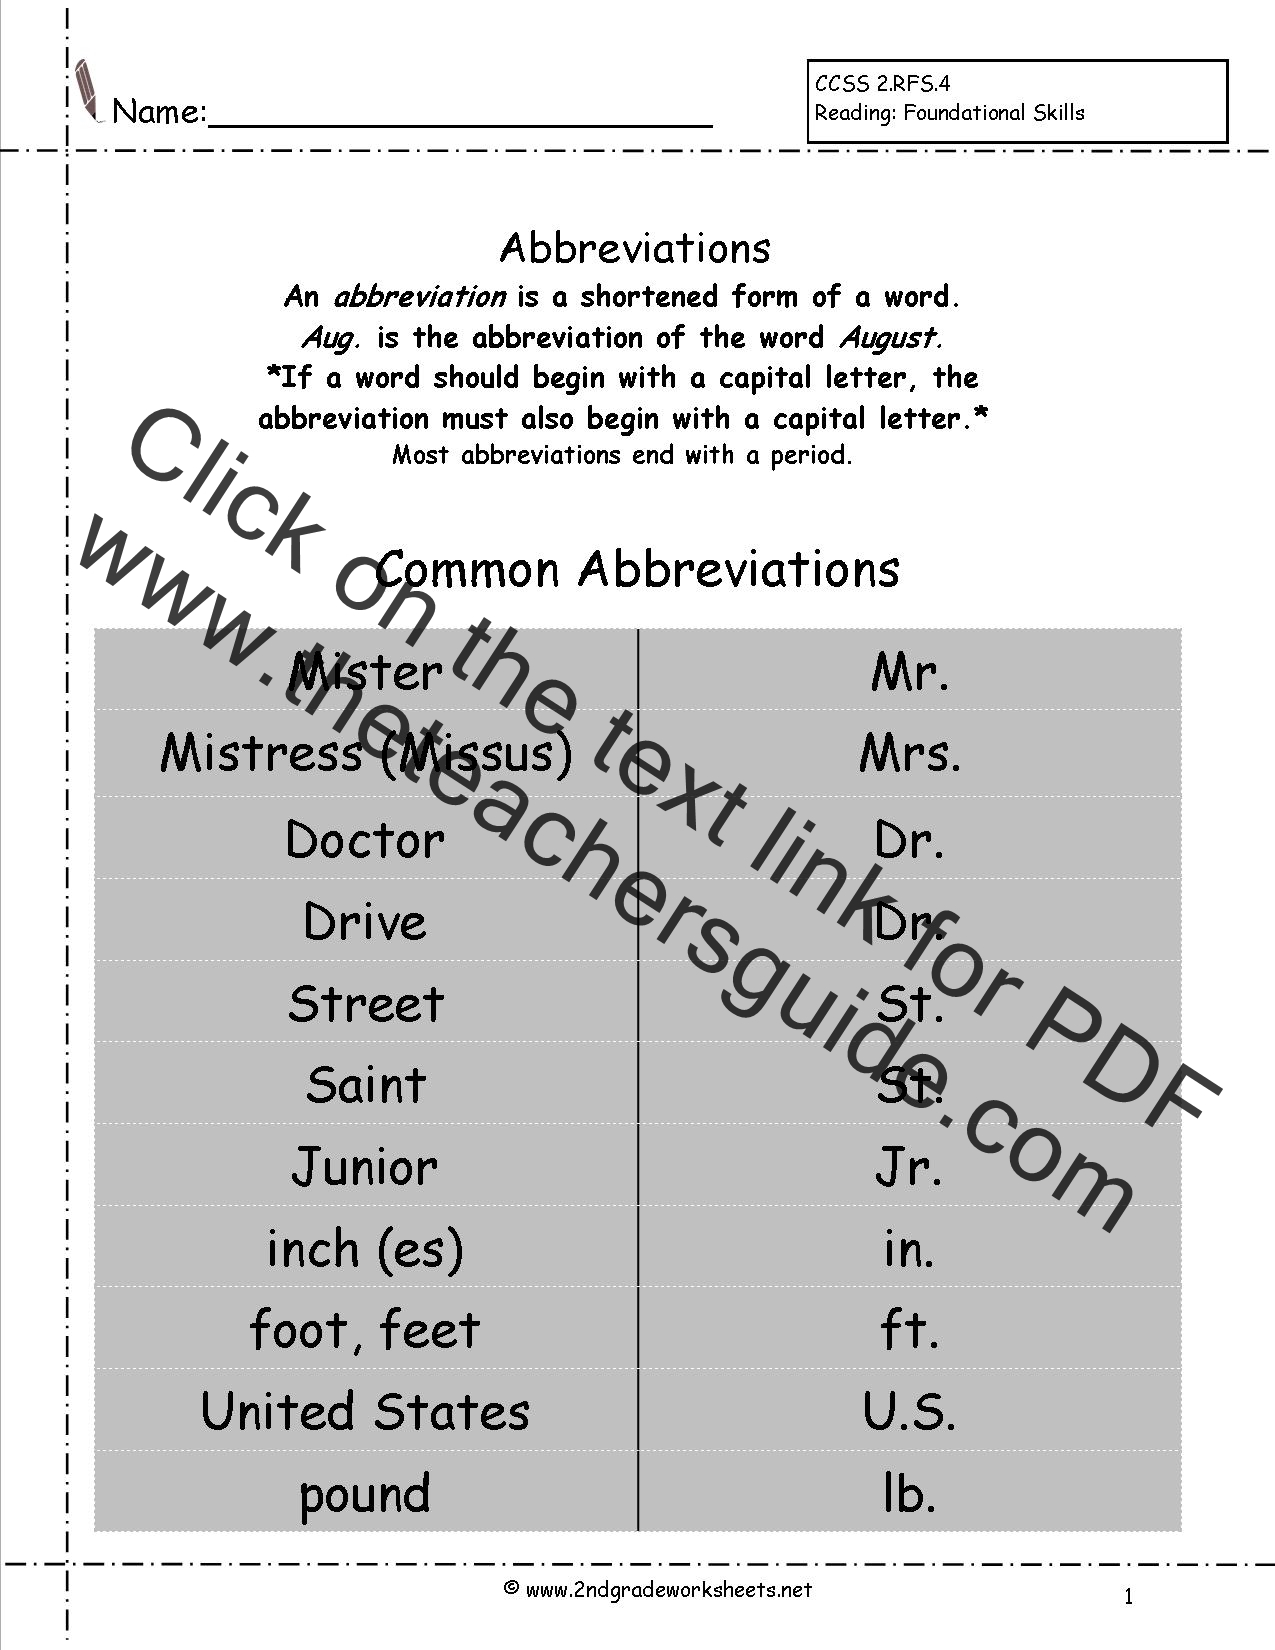 How to abbreviate words 83